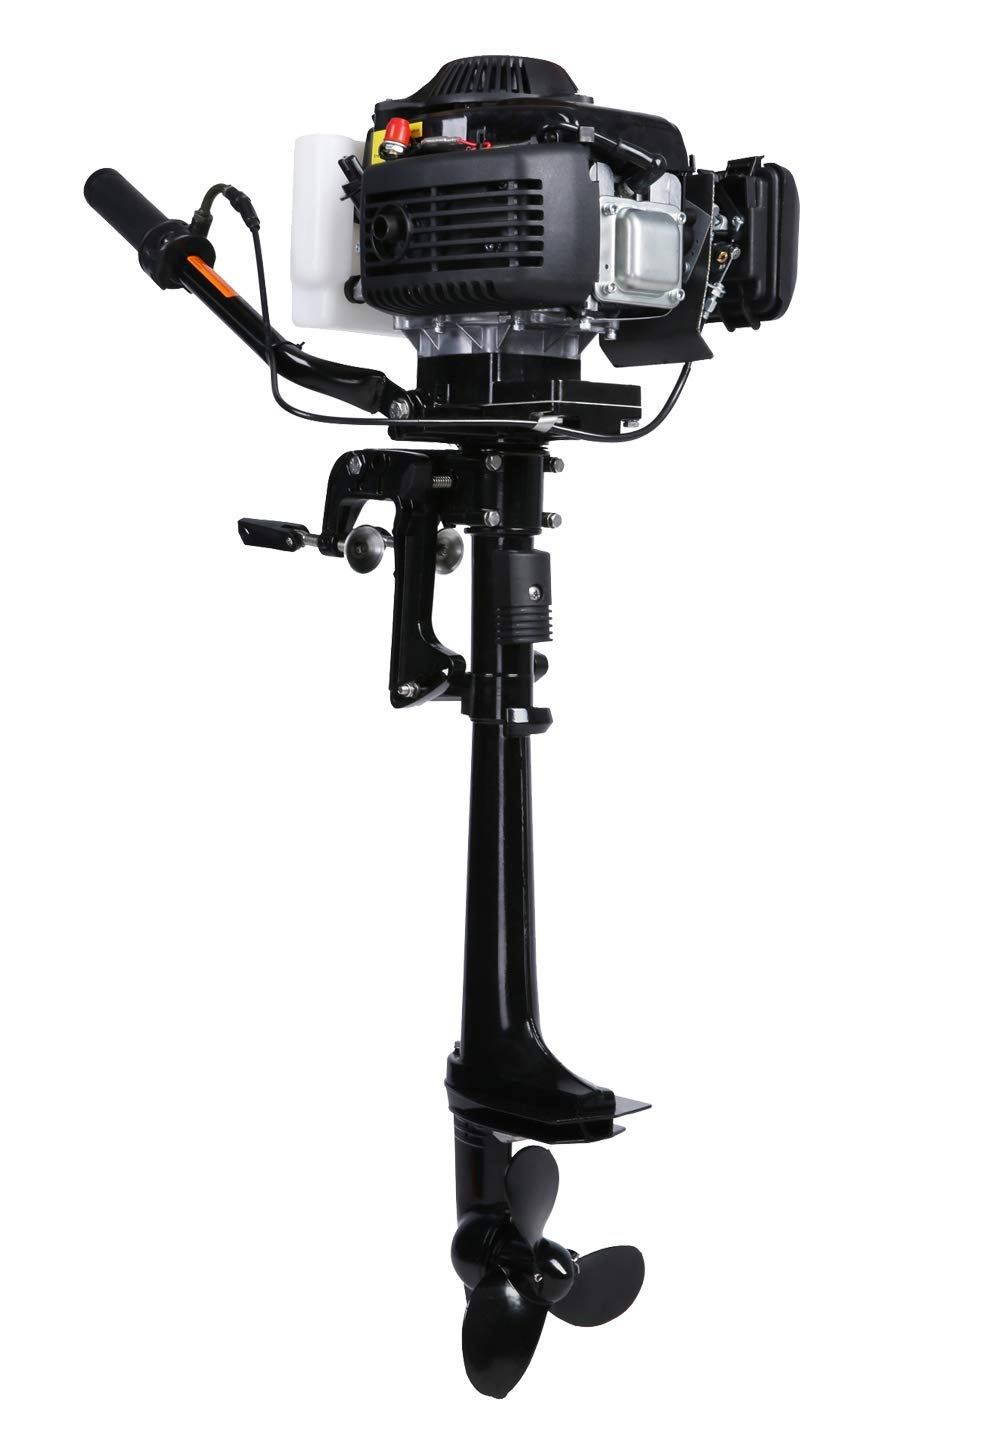 LEADALLWAY 4HP Outboard Motor Four Stroke Air-Cooled Boat Engine for Inflatable Small Fishing Boat 4T 4.0+ by LEADALLWAY